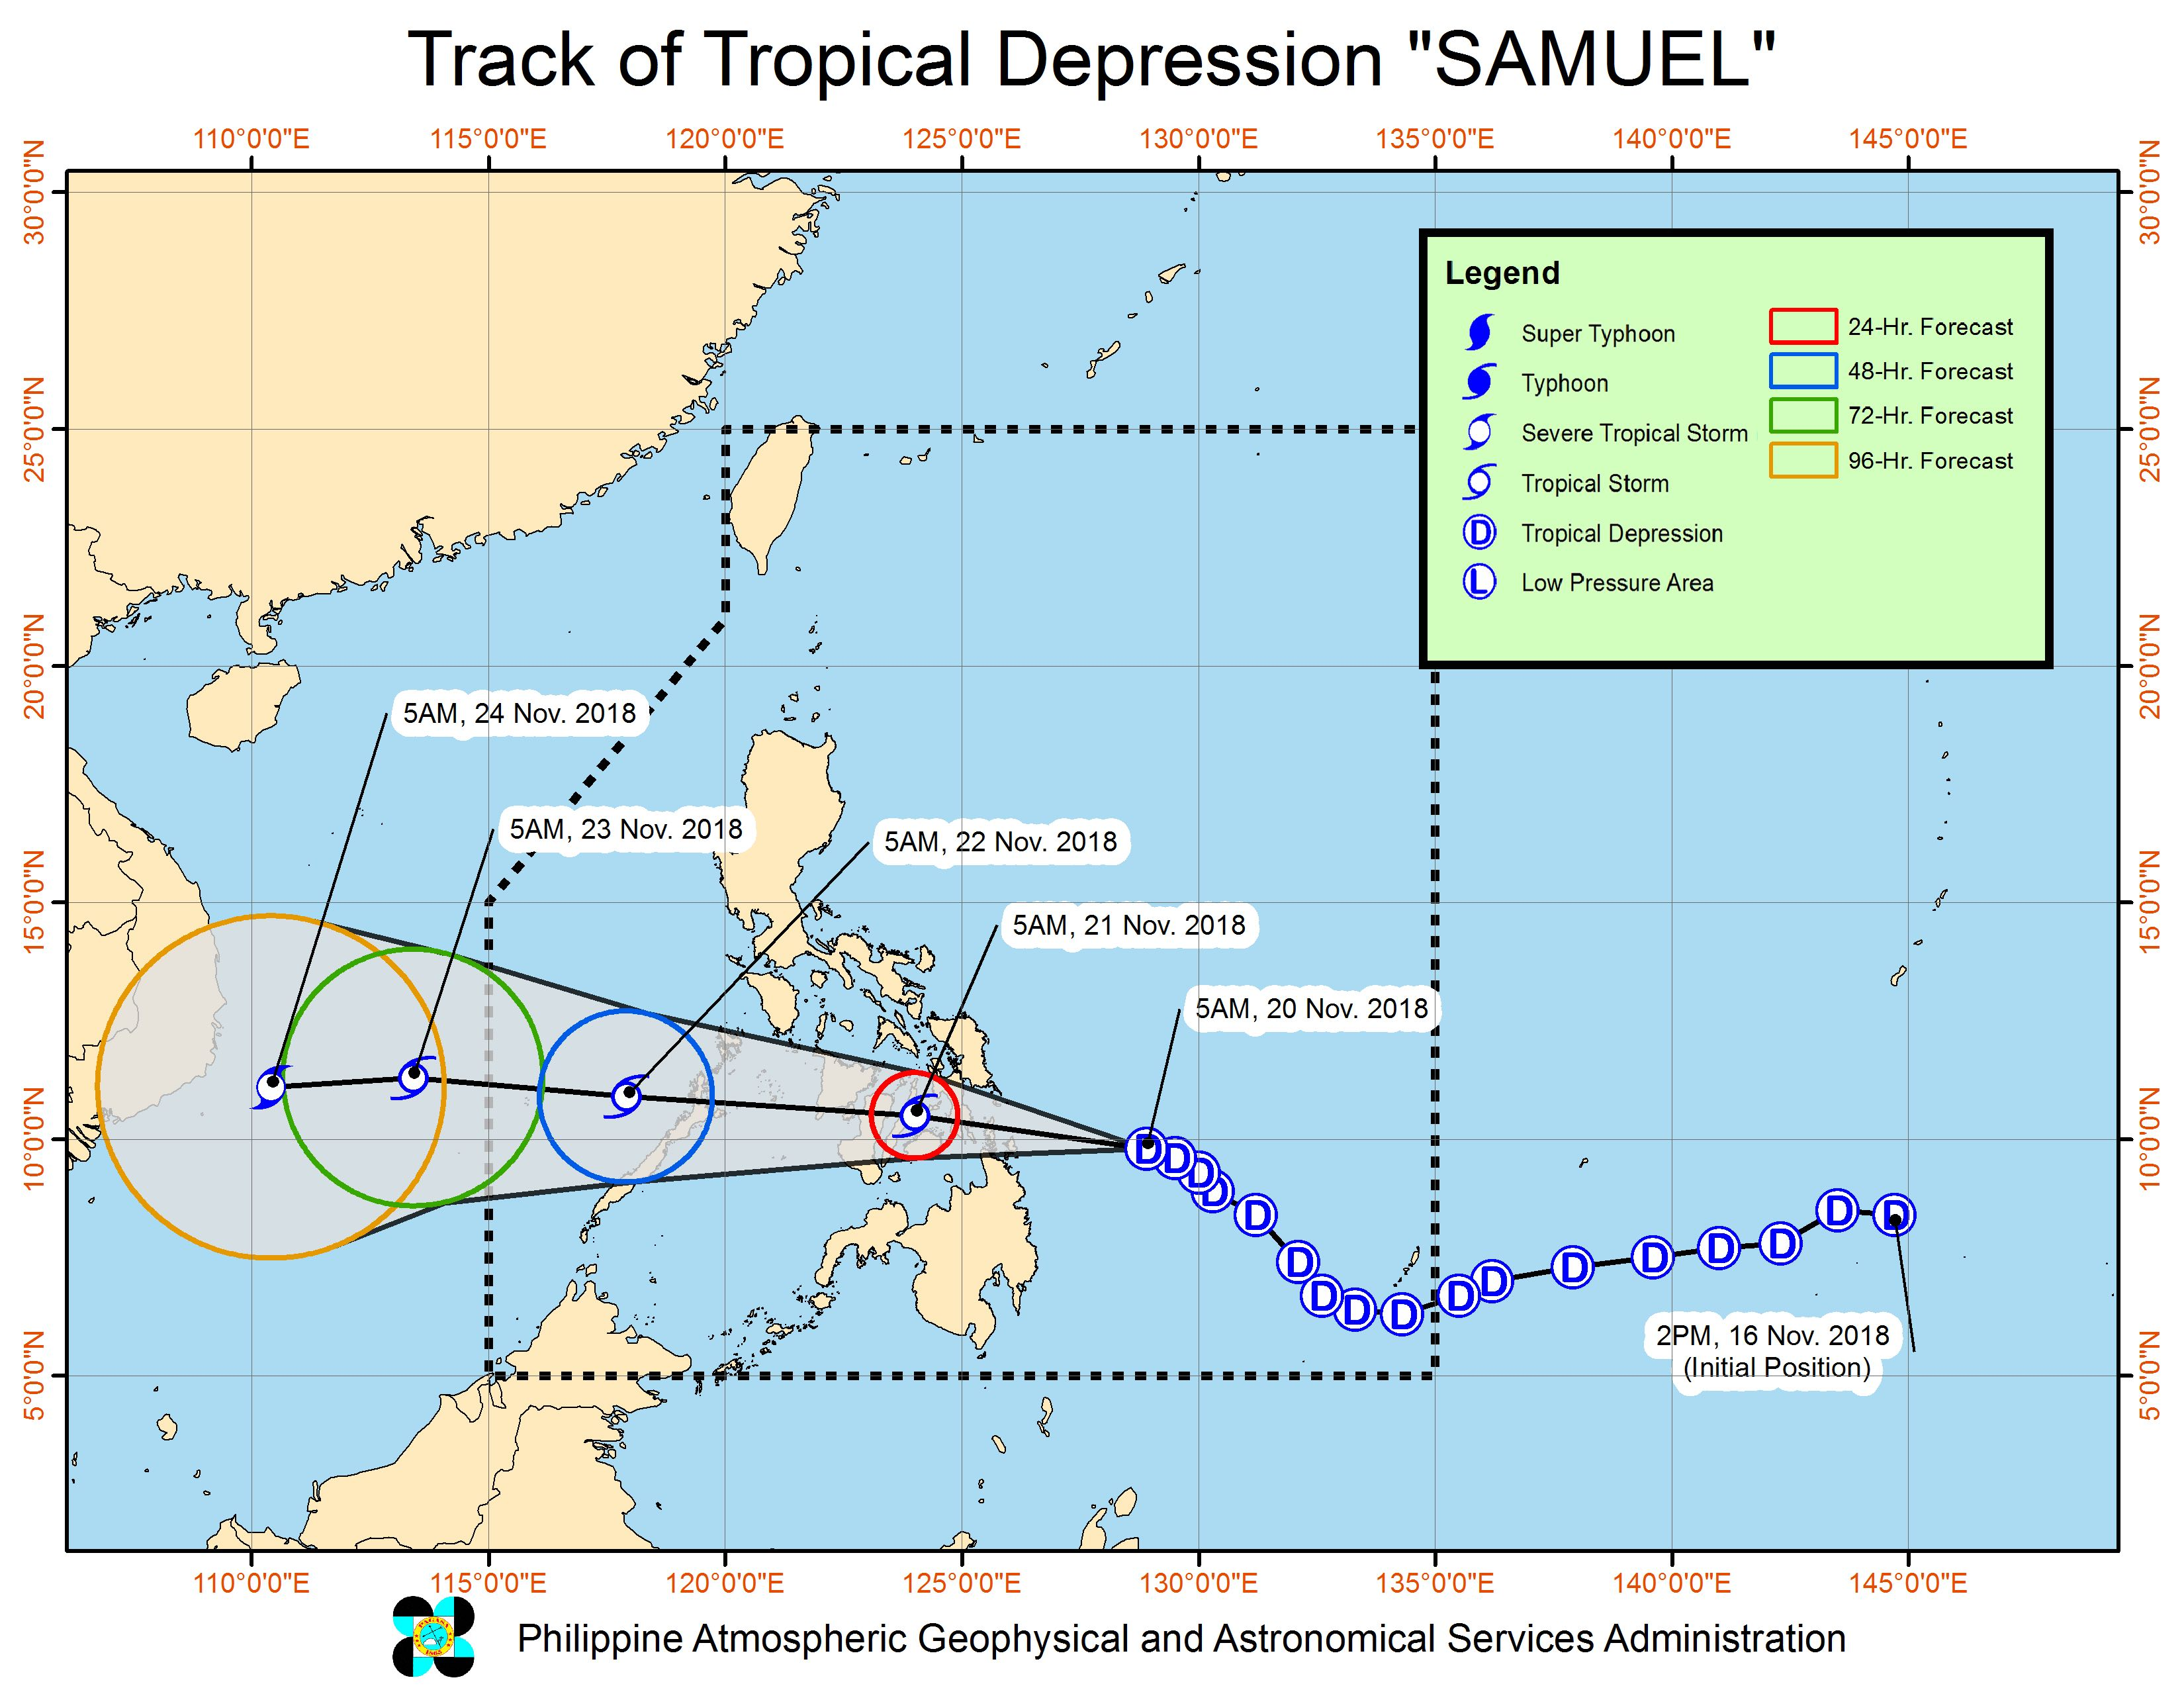 Forecast track of Tropical Depression Samuel as of November 20, 2018, 8 am. Image from PAGASA